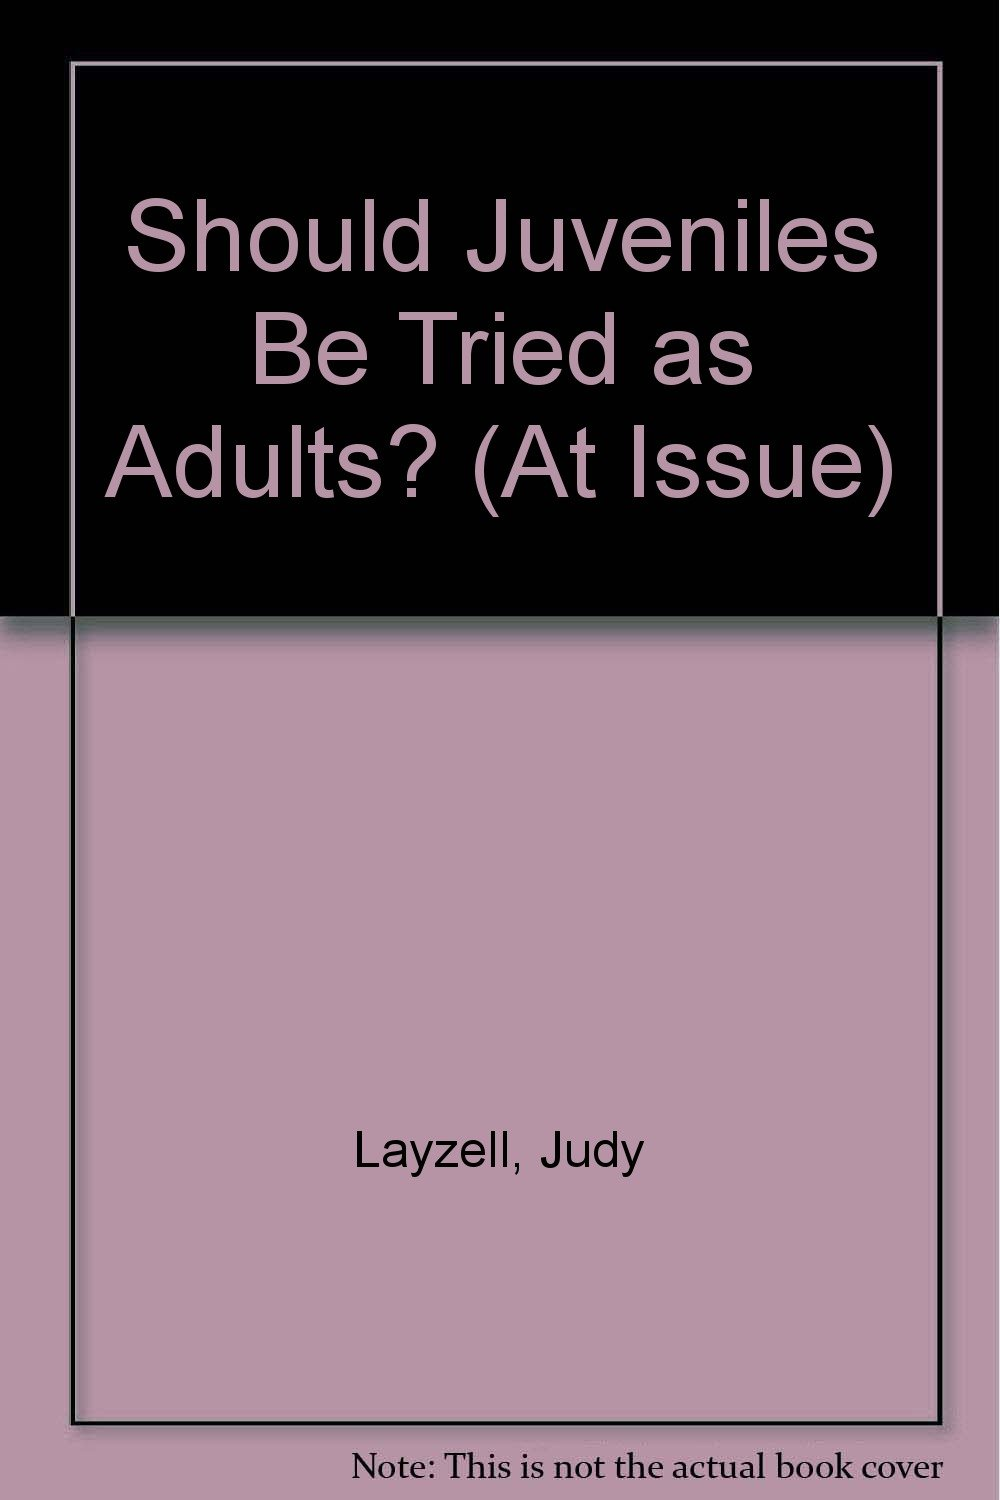 should juveniles be tried as adults essays discussion essays  com at issue series should juveniles be tried as adults com at issue series should juveniles prime essays uk review